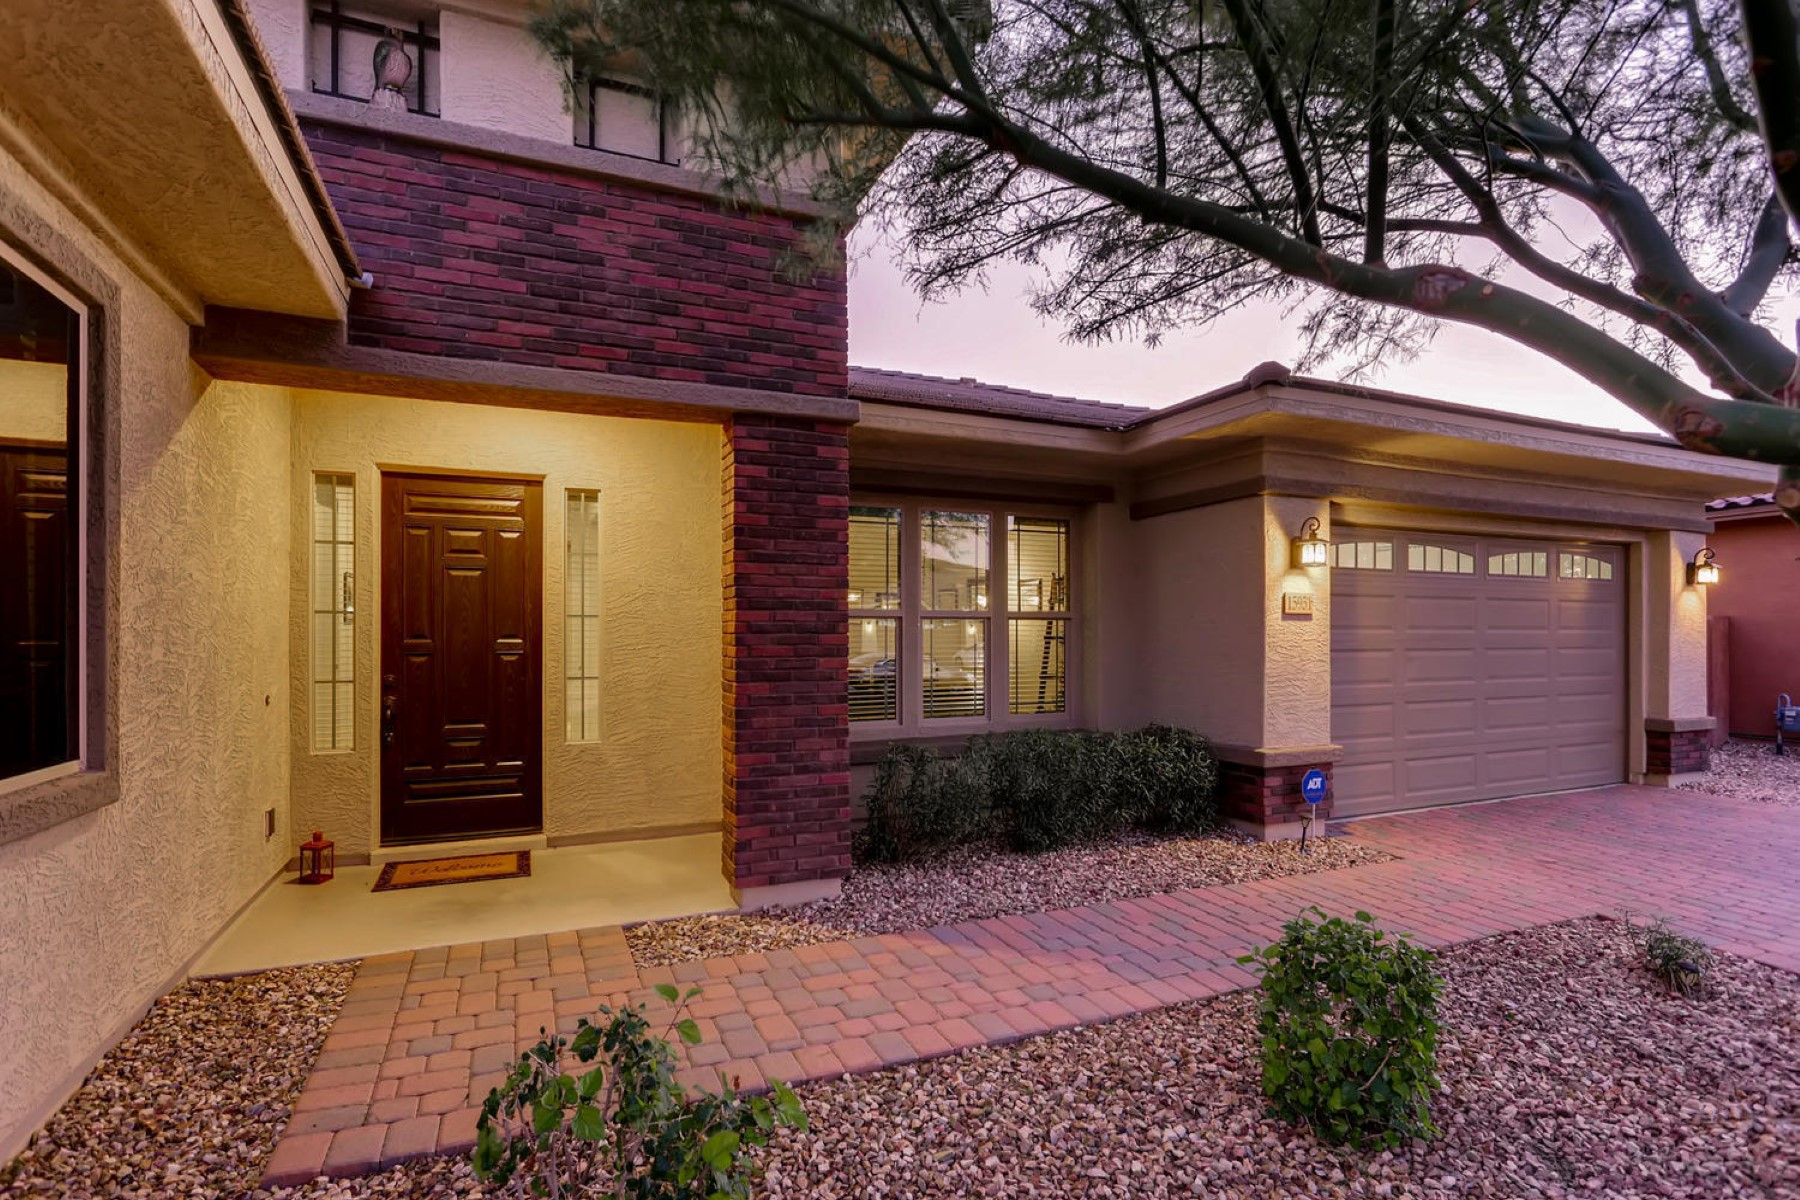 single family homes for Active at Beautiful Single-level Home 15951 W BONITOS DR Goodyear, Arizona 85395 United States